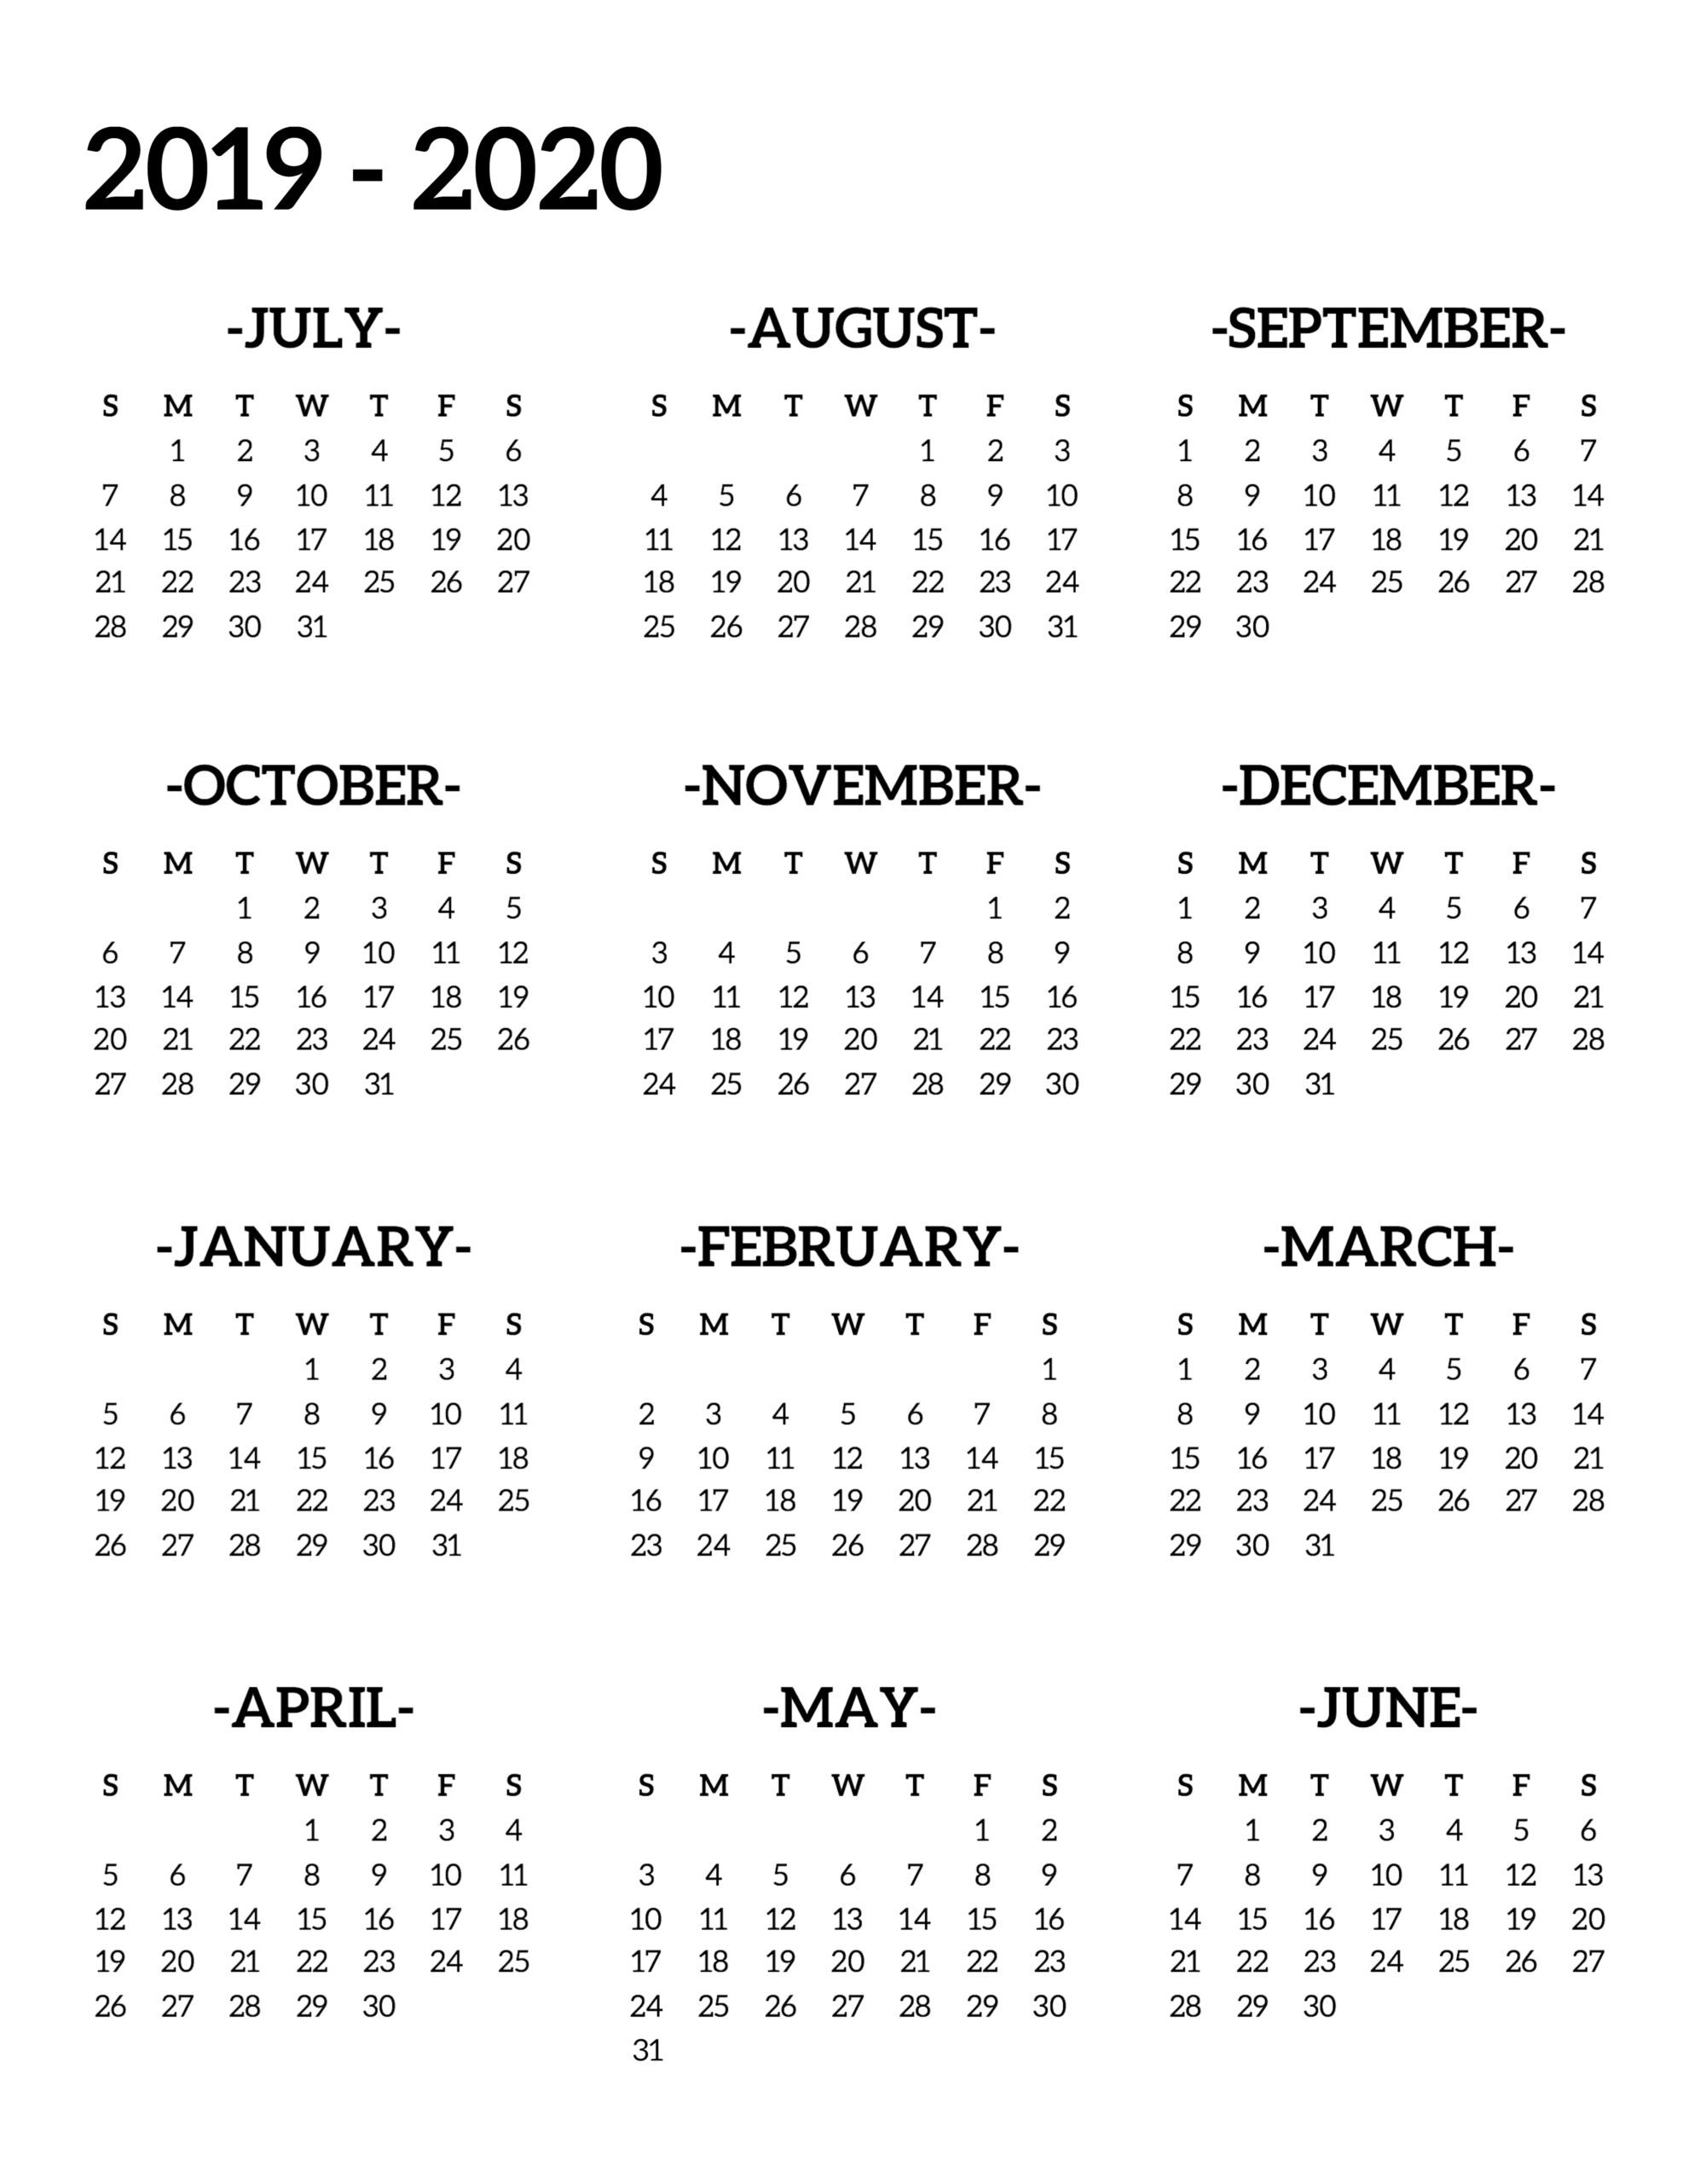 2020 One Page Calendar Printable  Yatay.horizonconsulting.co with 2020 At A Glance Calendar Printable